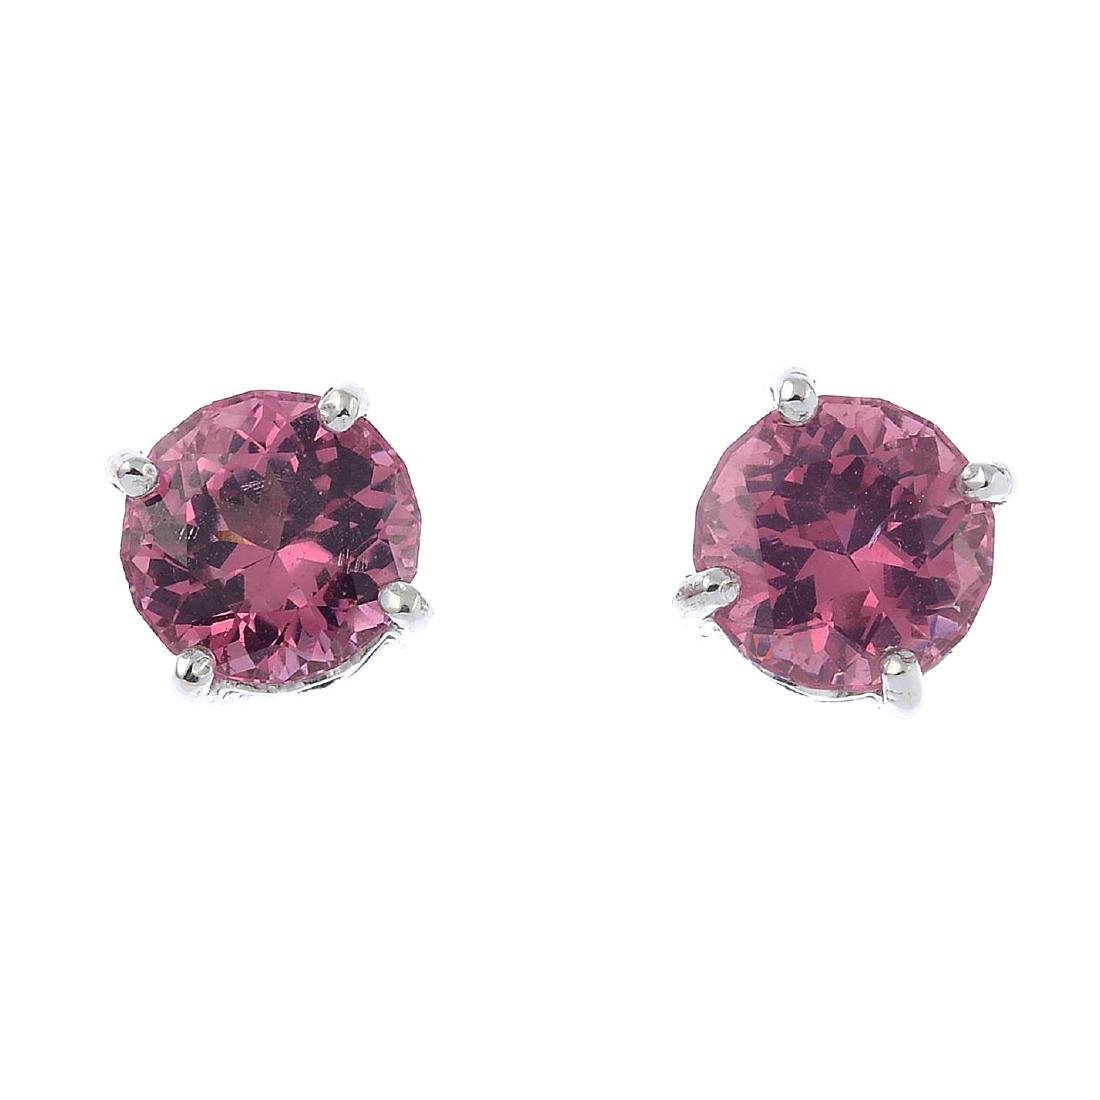 A pair of spinel stud earrings. Each designed as a